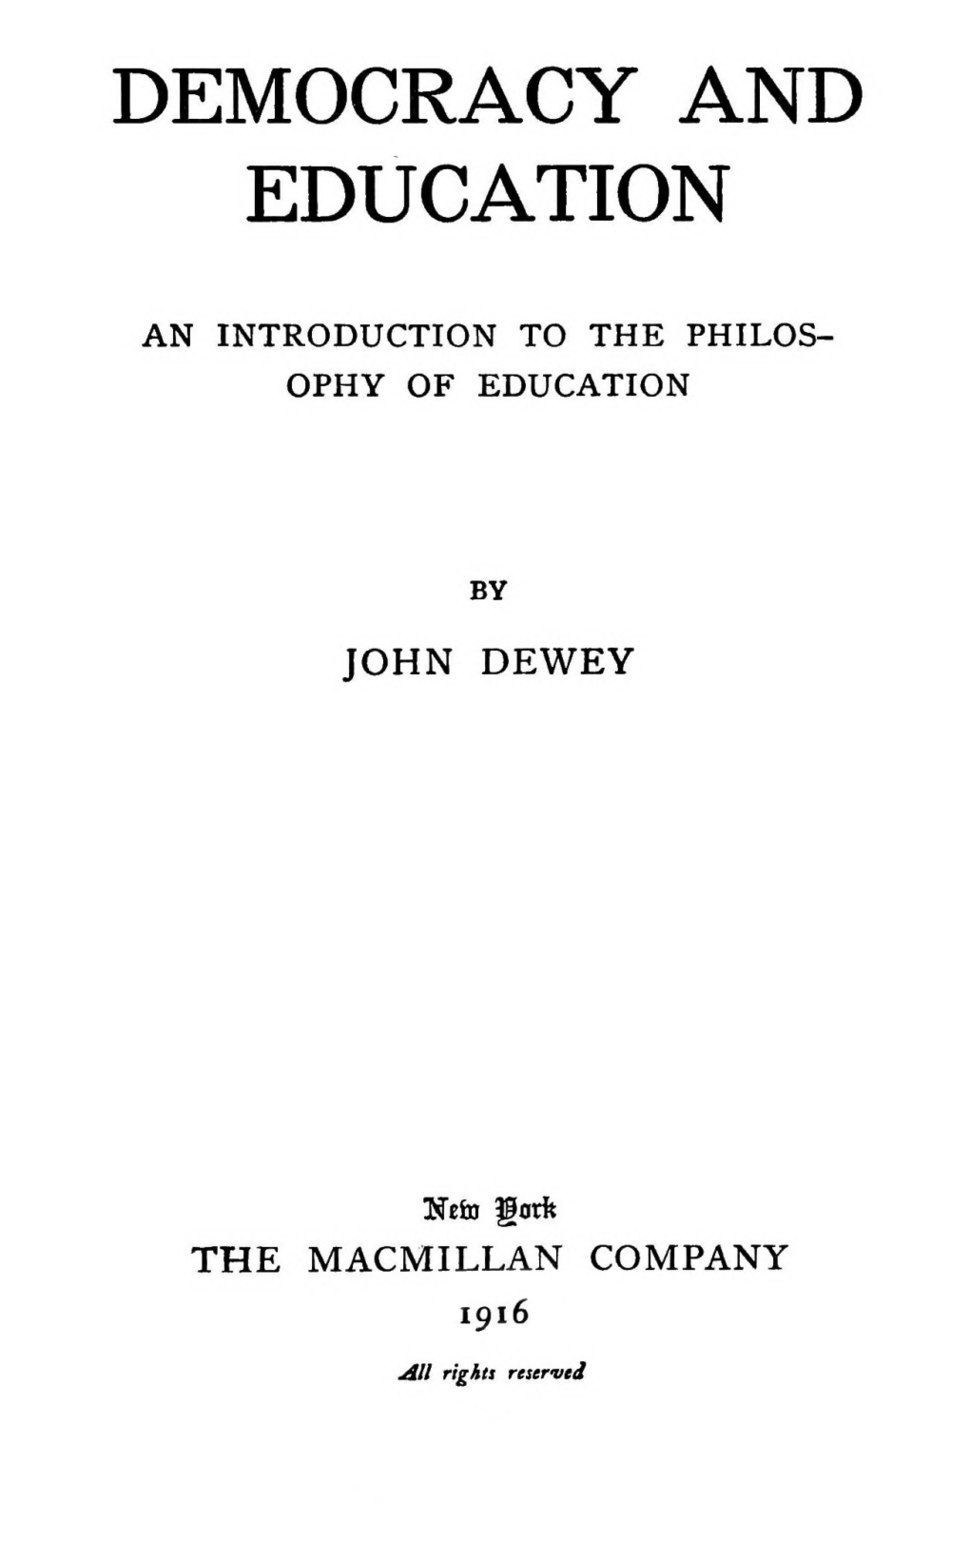 Democracy and Education title page